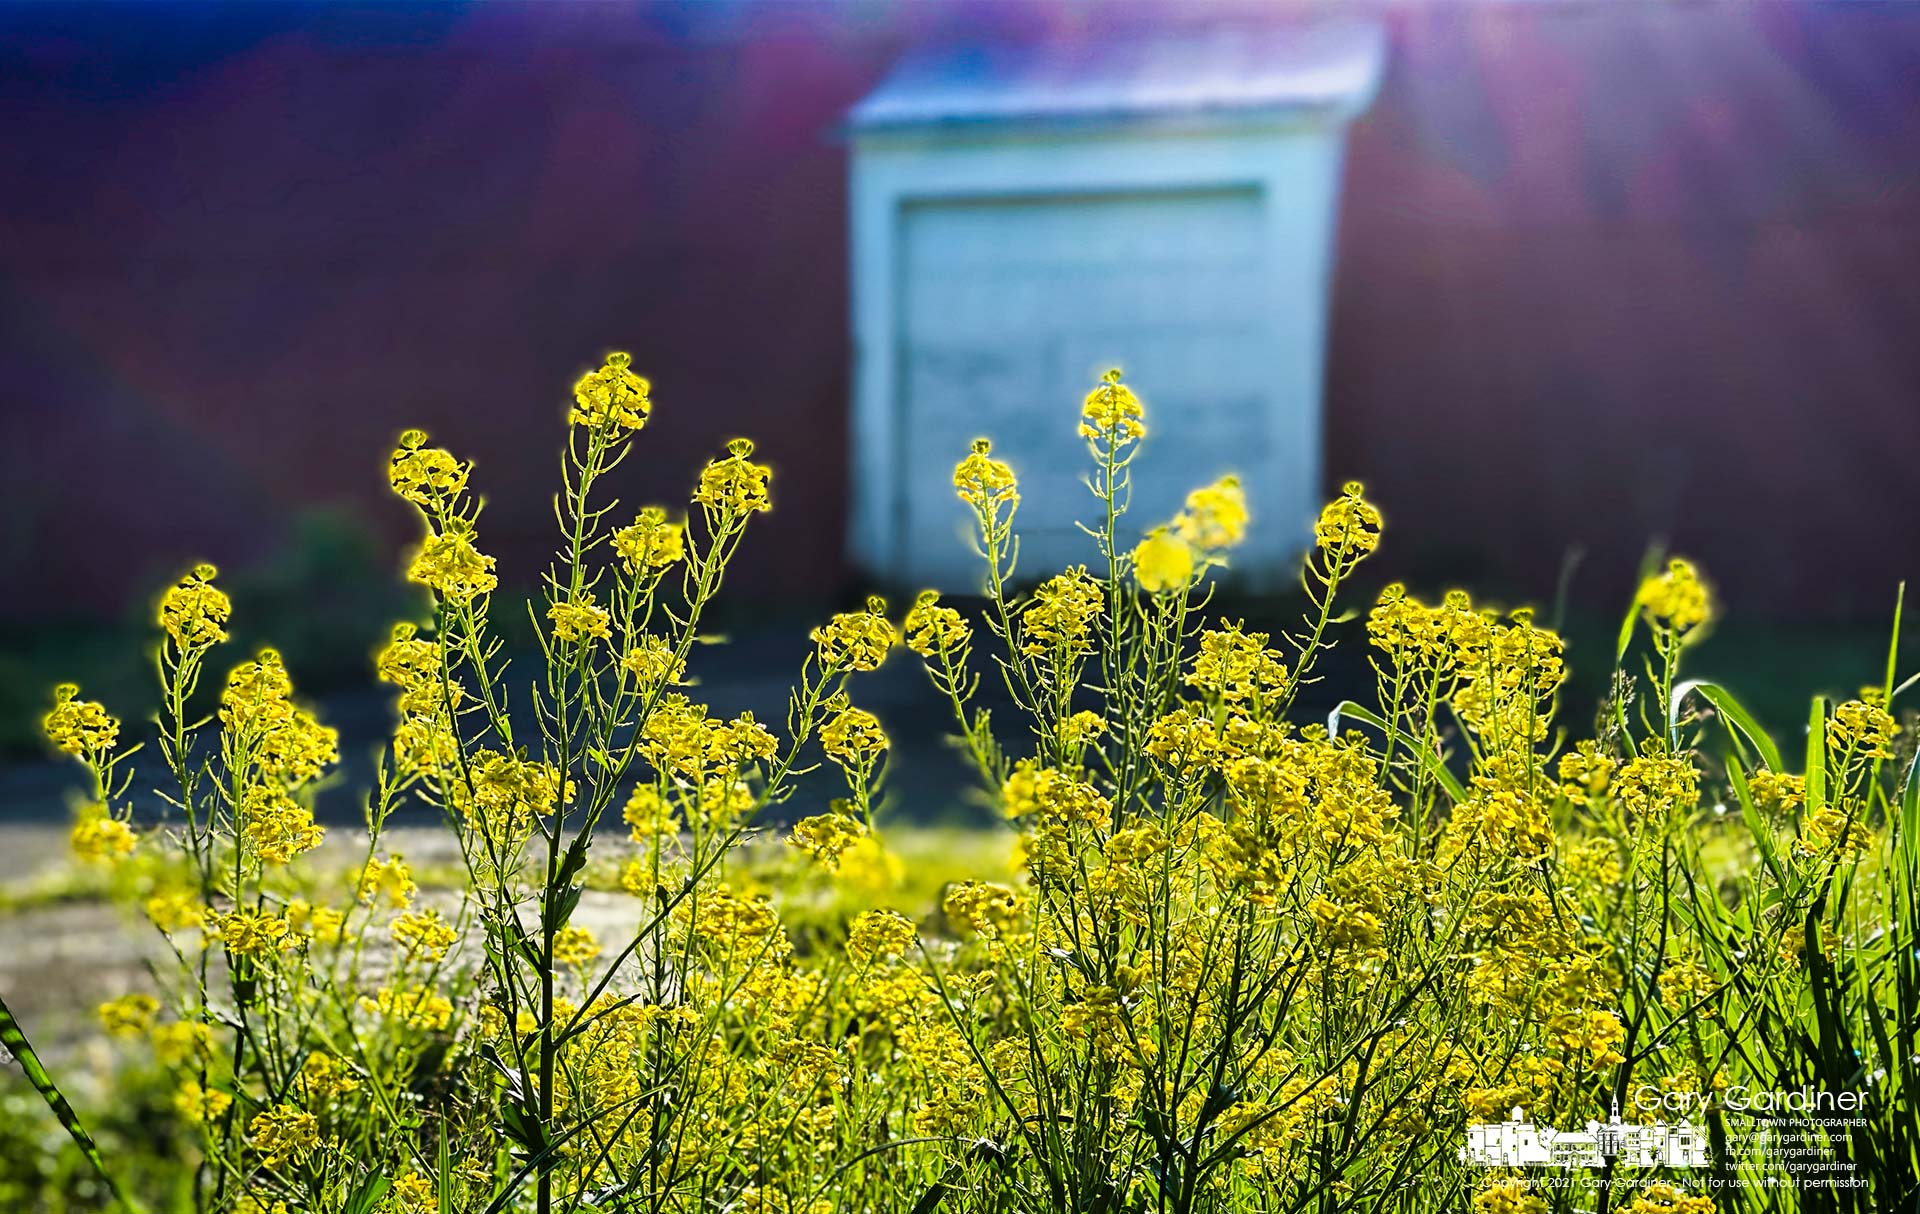 The morning sun breaks through the fog casting rays across the Braun Farm barn onto flowering Yellow Rocket. My Final Photo for May 10, 2021.